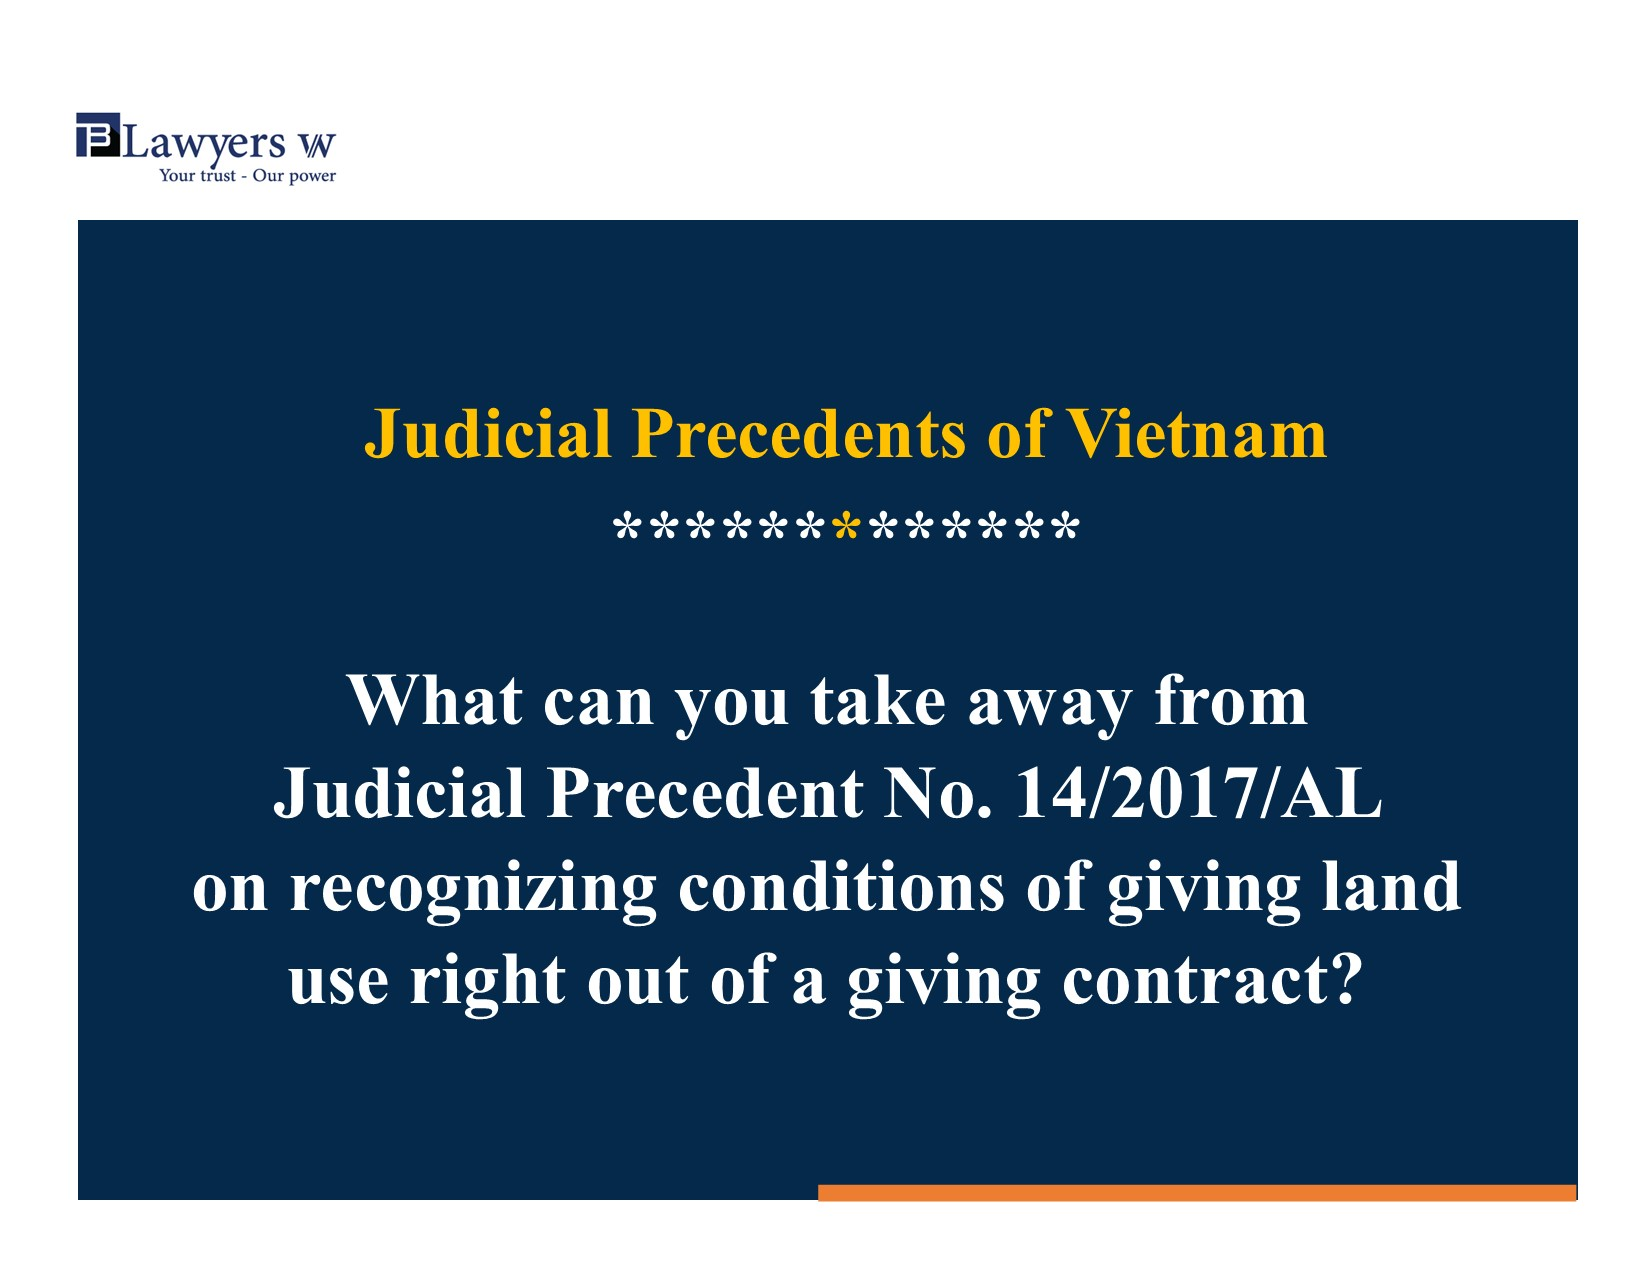 Judicial Precedent 14 recognized giving condition out of a giving contract